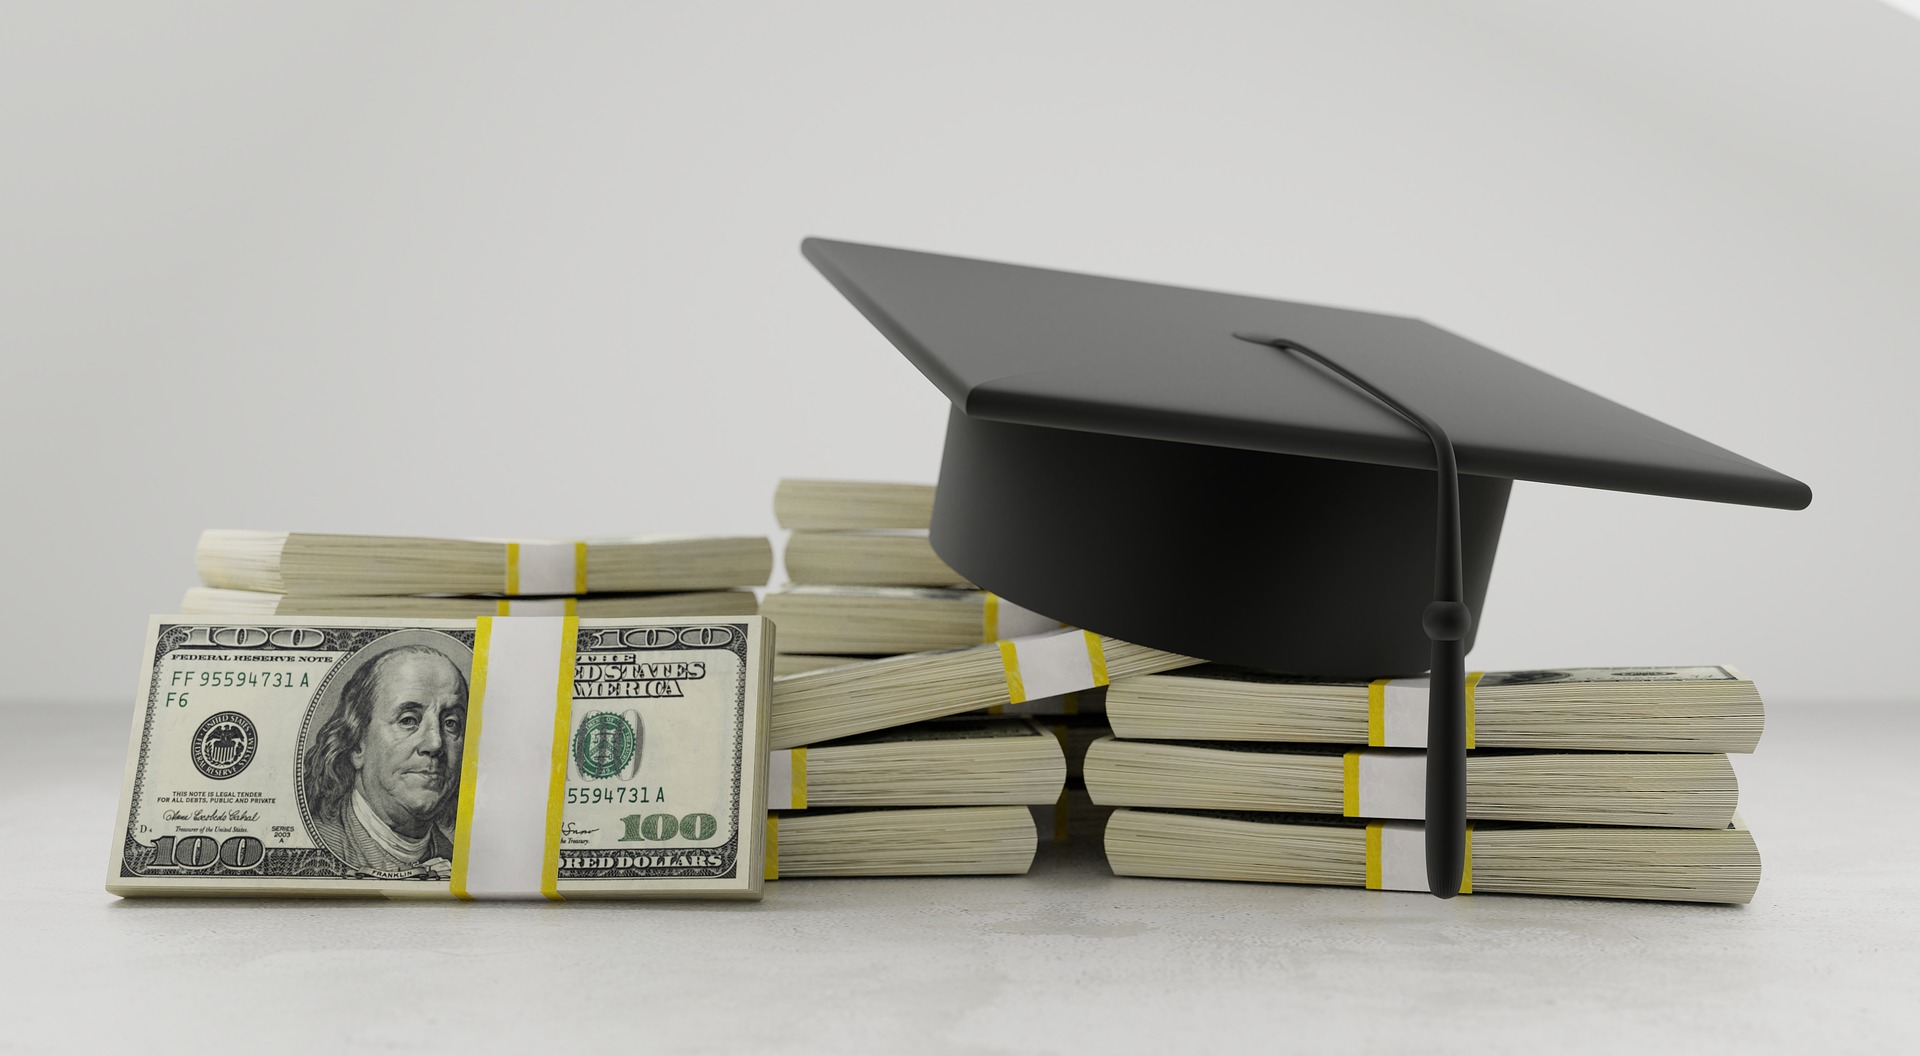 College graduation debts and money